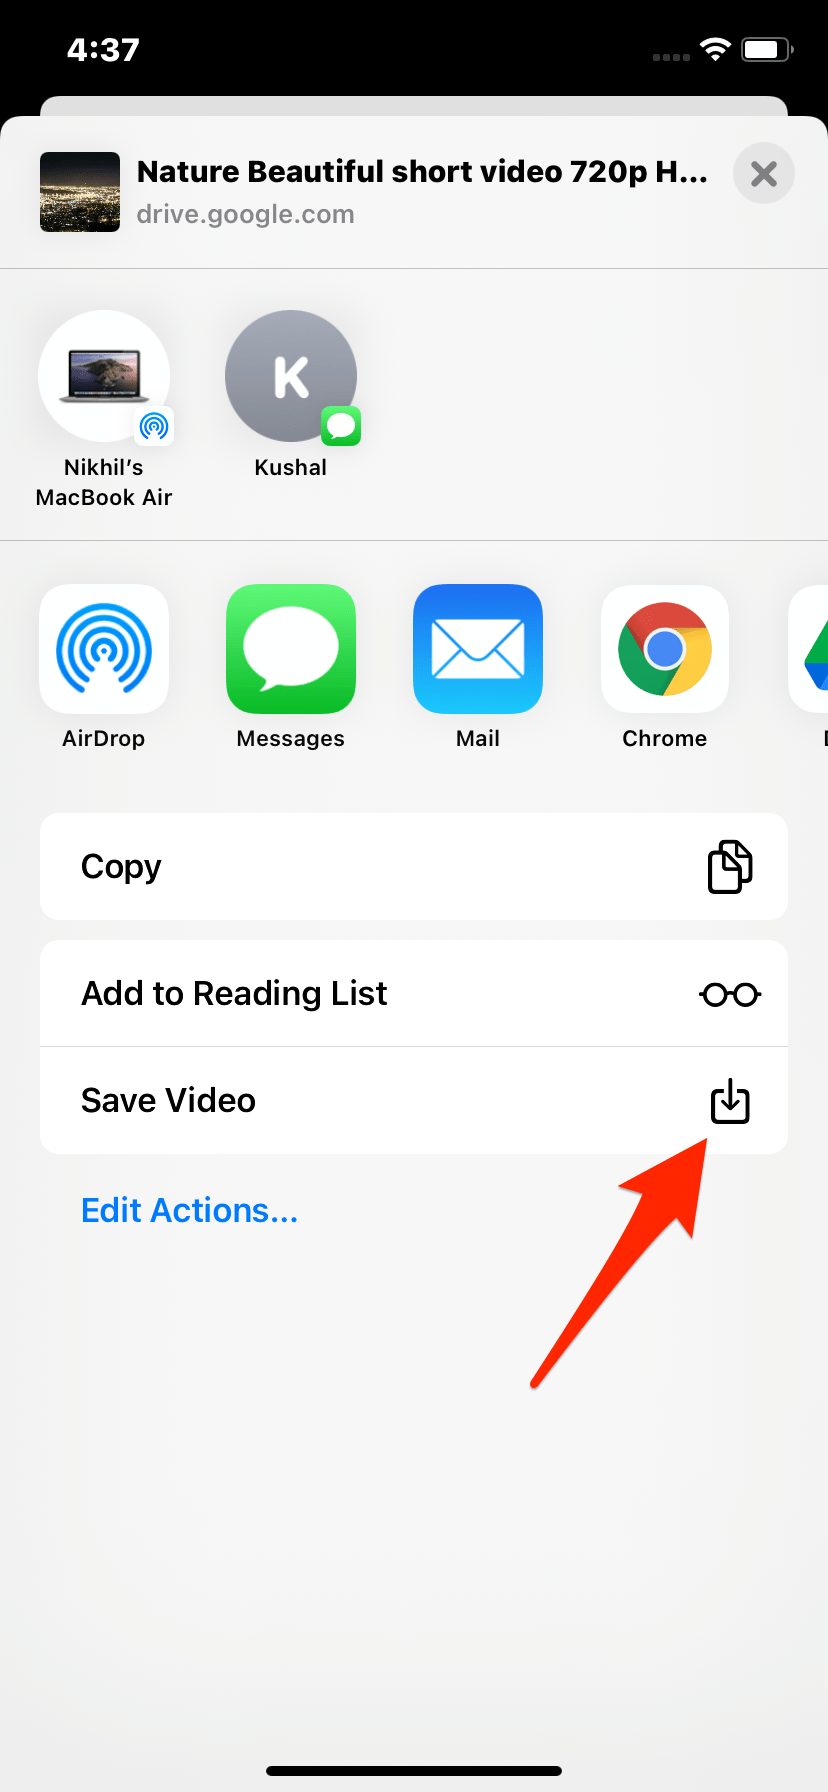 How to Download Google Drive Video to iPhone Camera Roll?